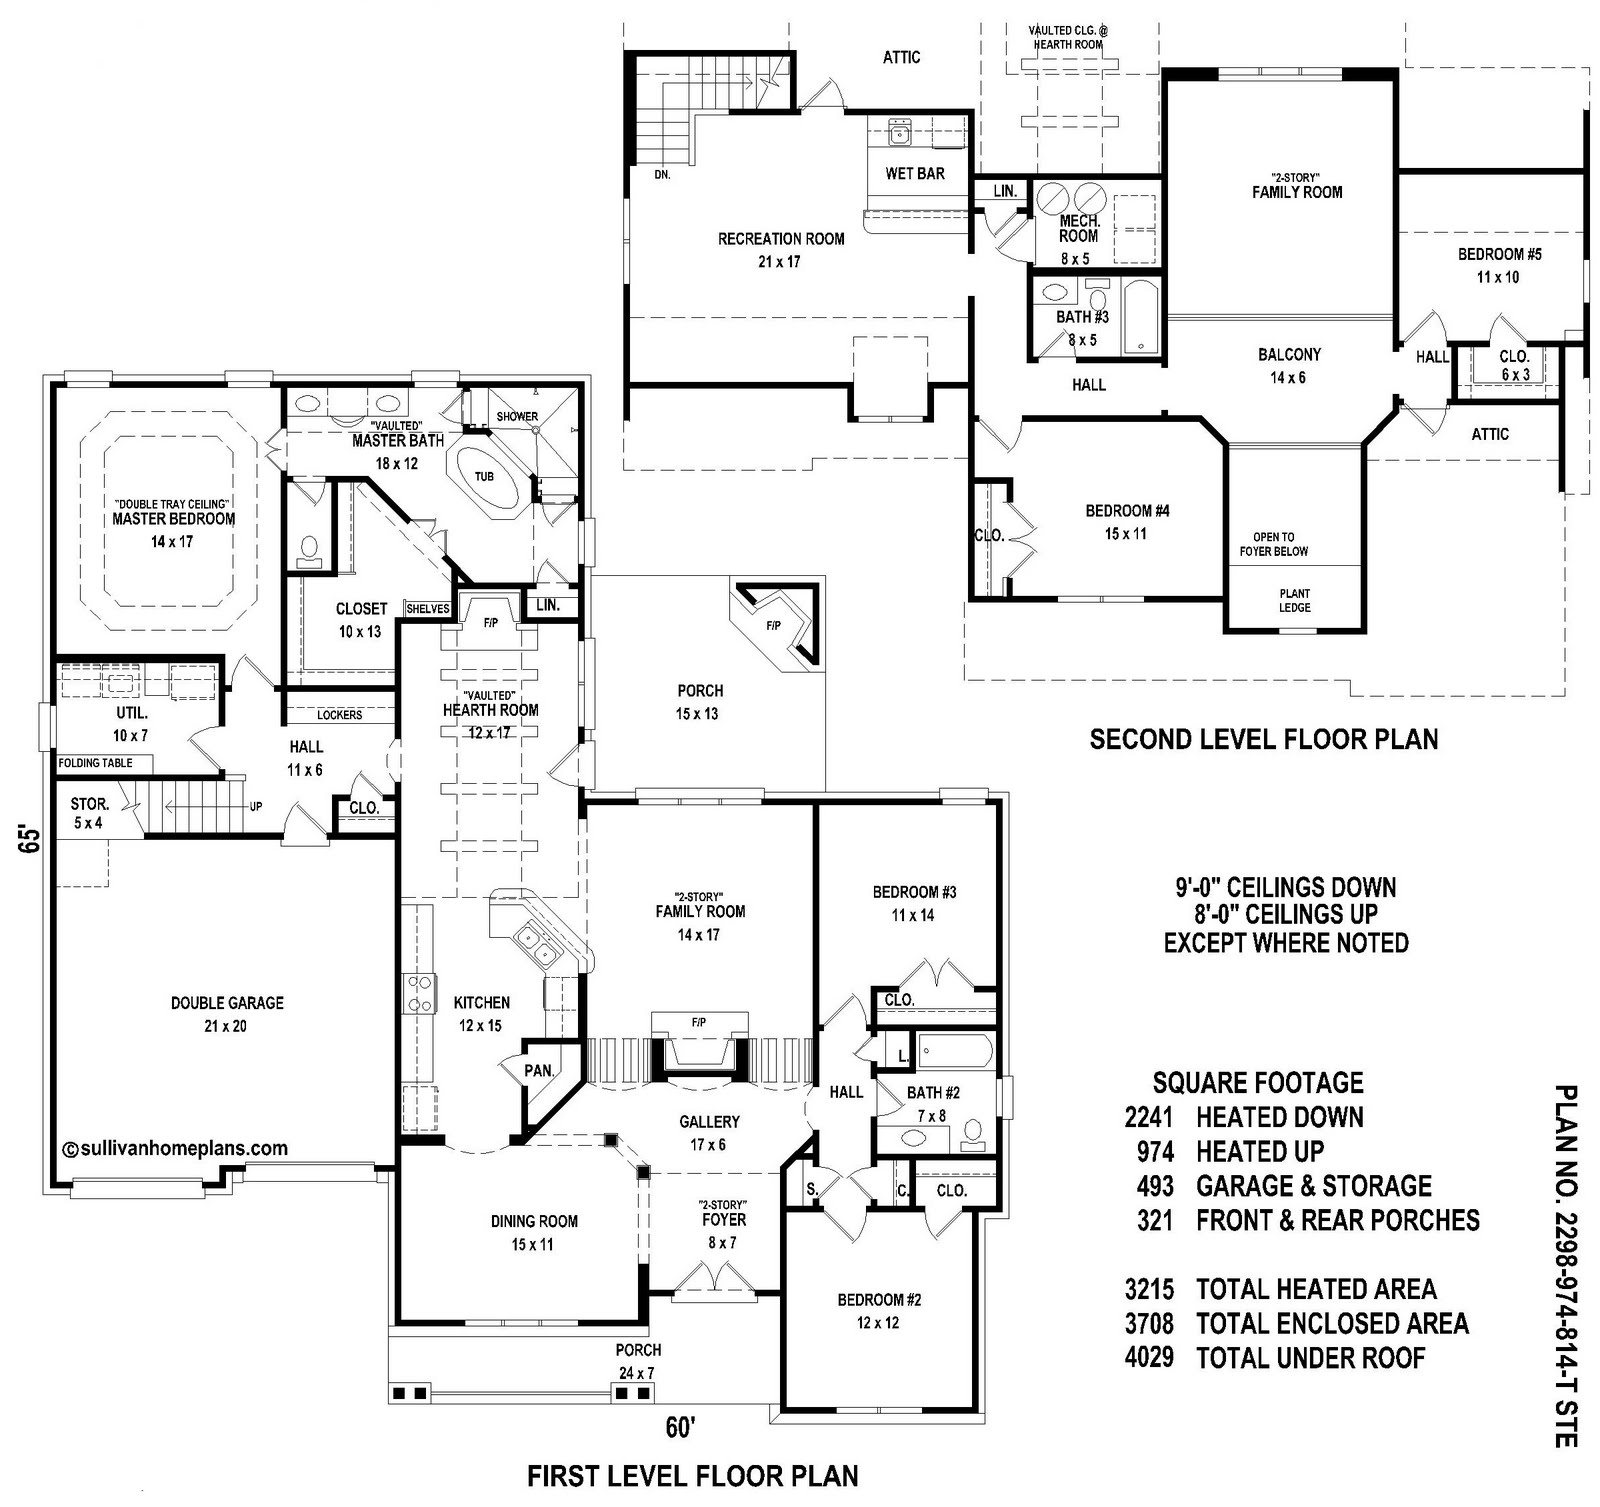 Sullivan home plans june 2010 5 bedroom floor plans